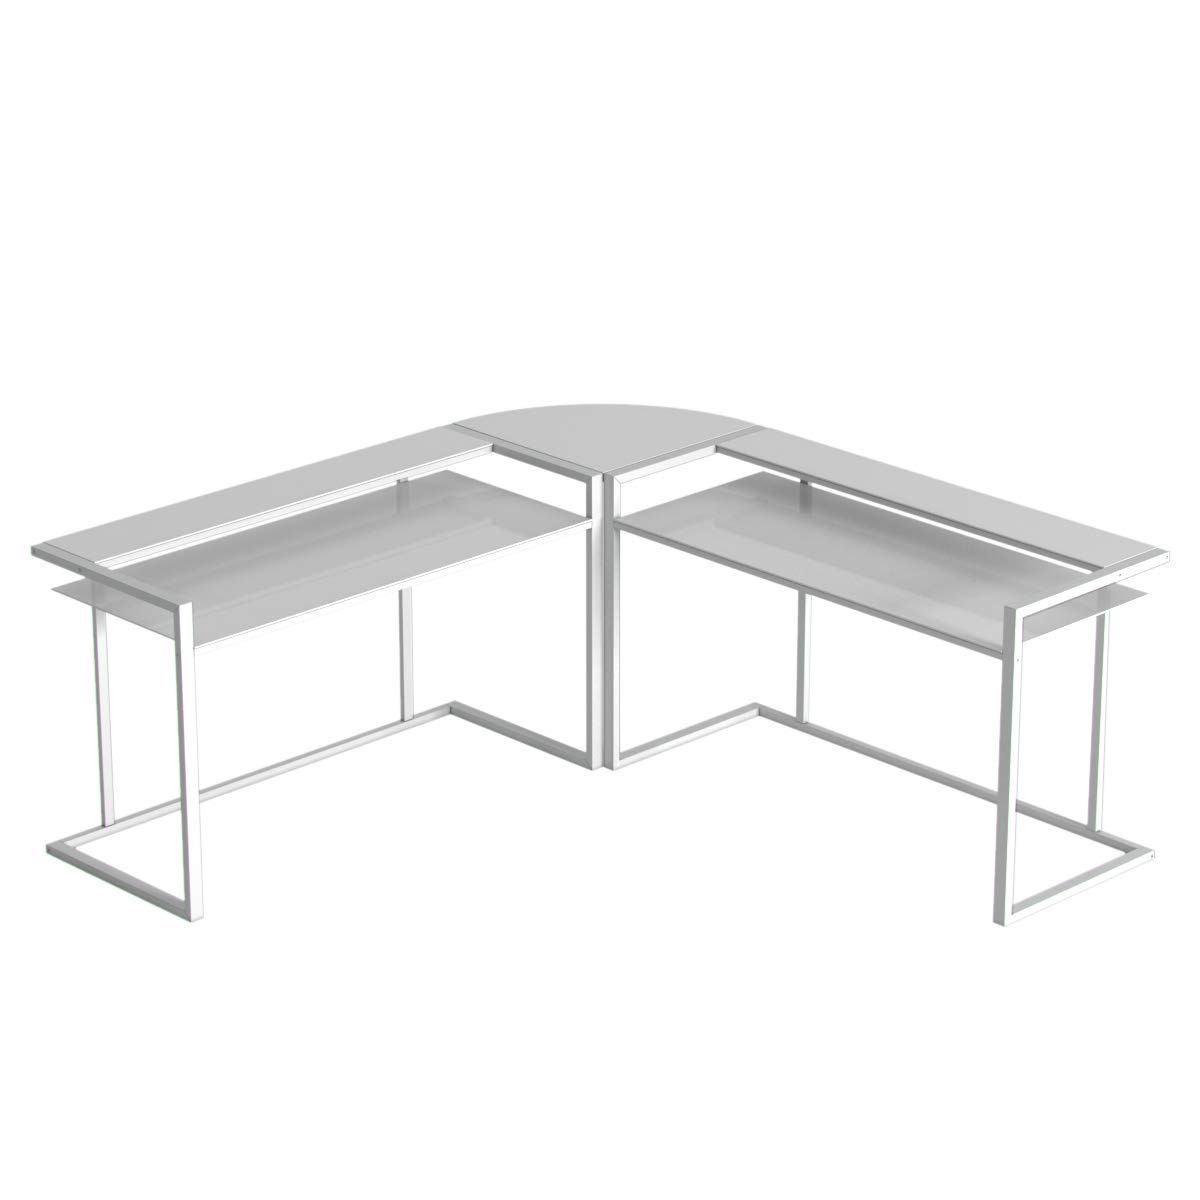 Belmac 3 Piece Corner C Frame L Shaped Computer Desk In White Glass And White Frame